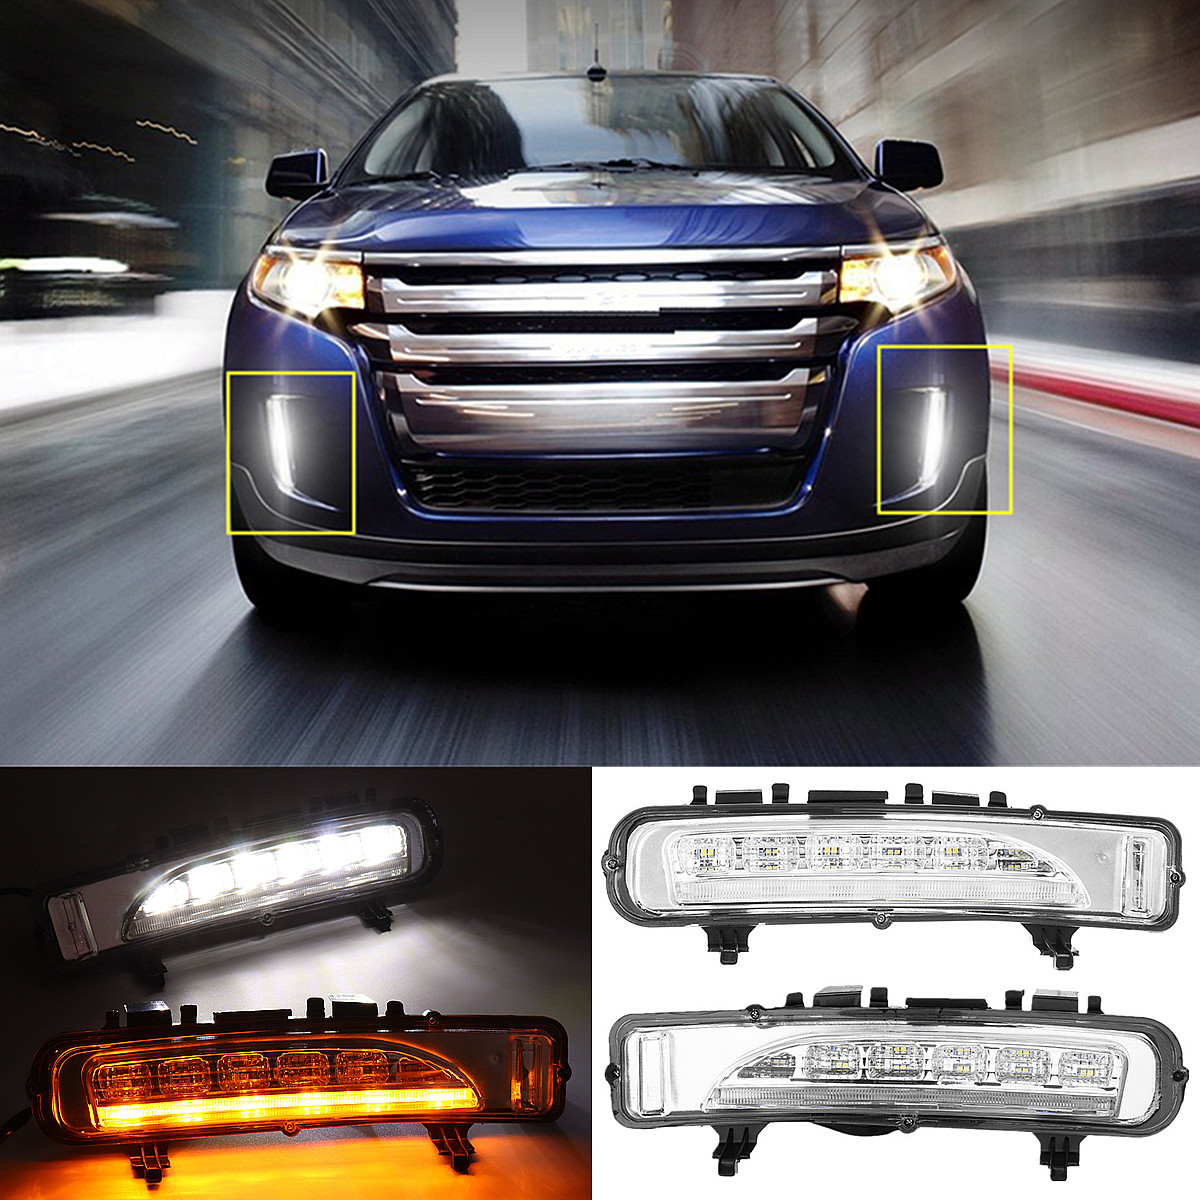 LED Daytime Running Light Turn Signal White/Yellow Safety Durable Waterproof DC 12V for Ford for Edge SUV Fog Lamp DRL 2011-2012 eosuns led drl daylights daytime running light with yellow turn signal fog lamp for ford mondeo 2010 12 wire module controller